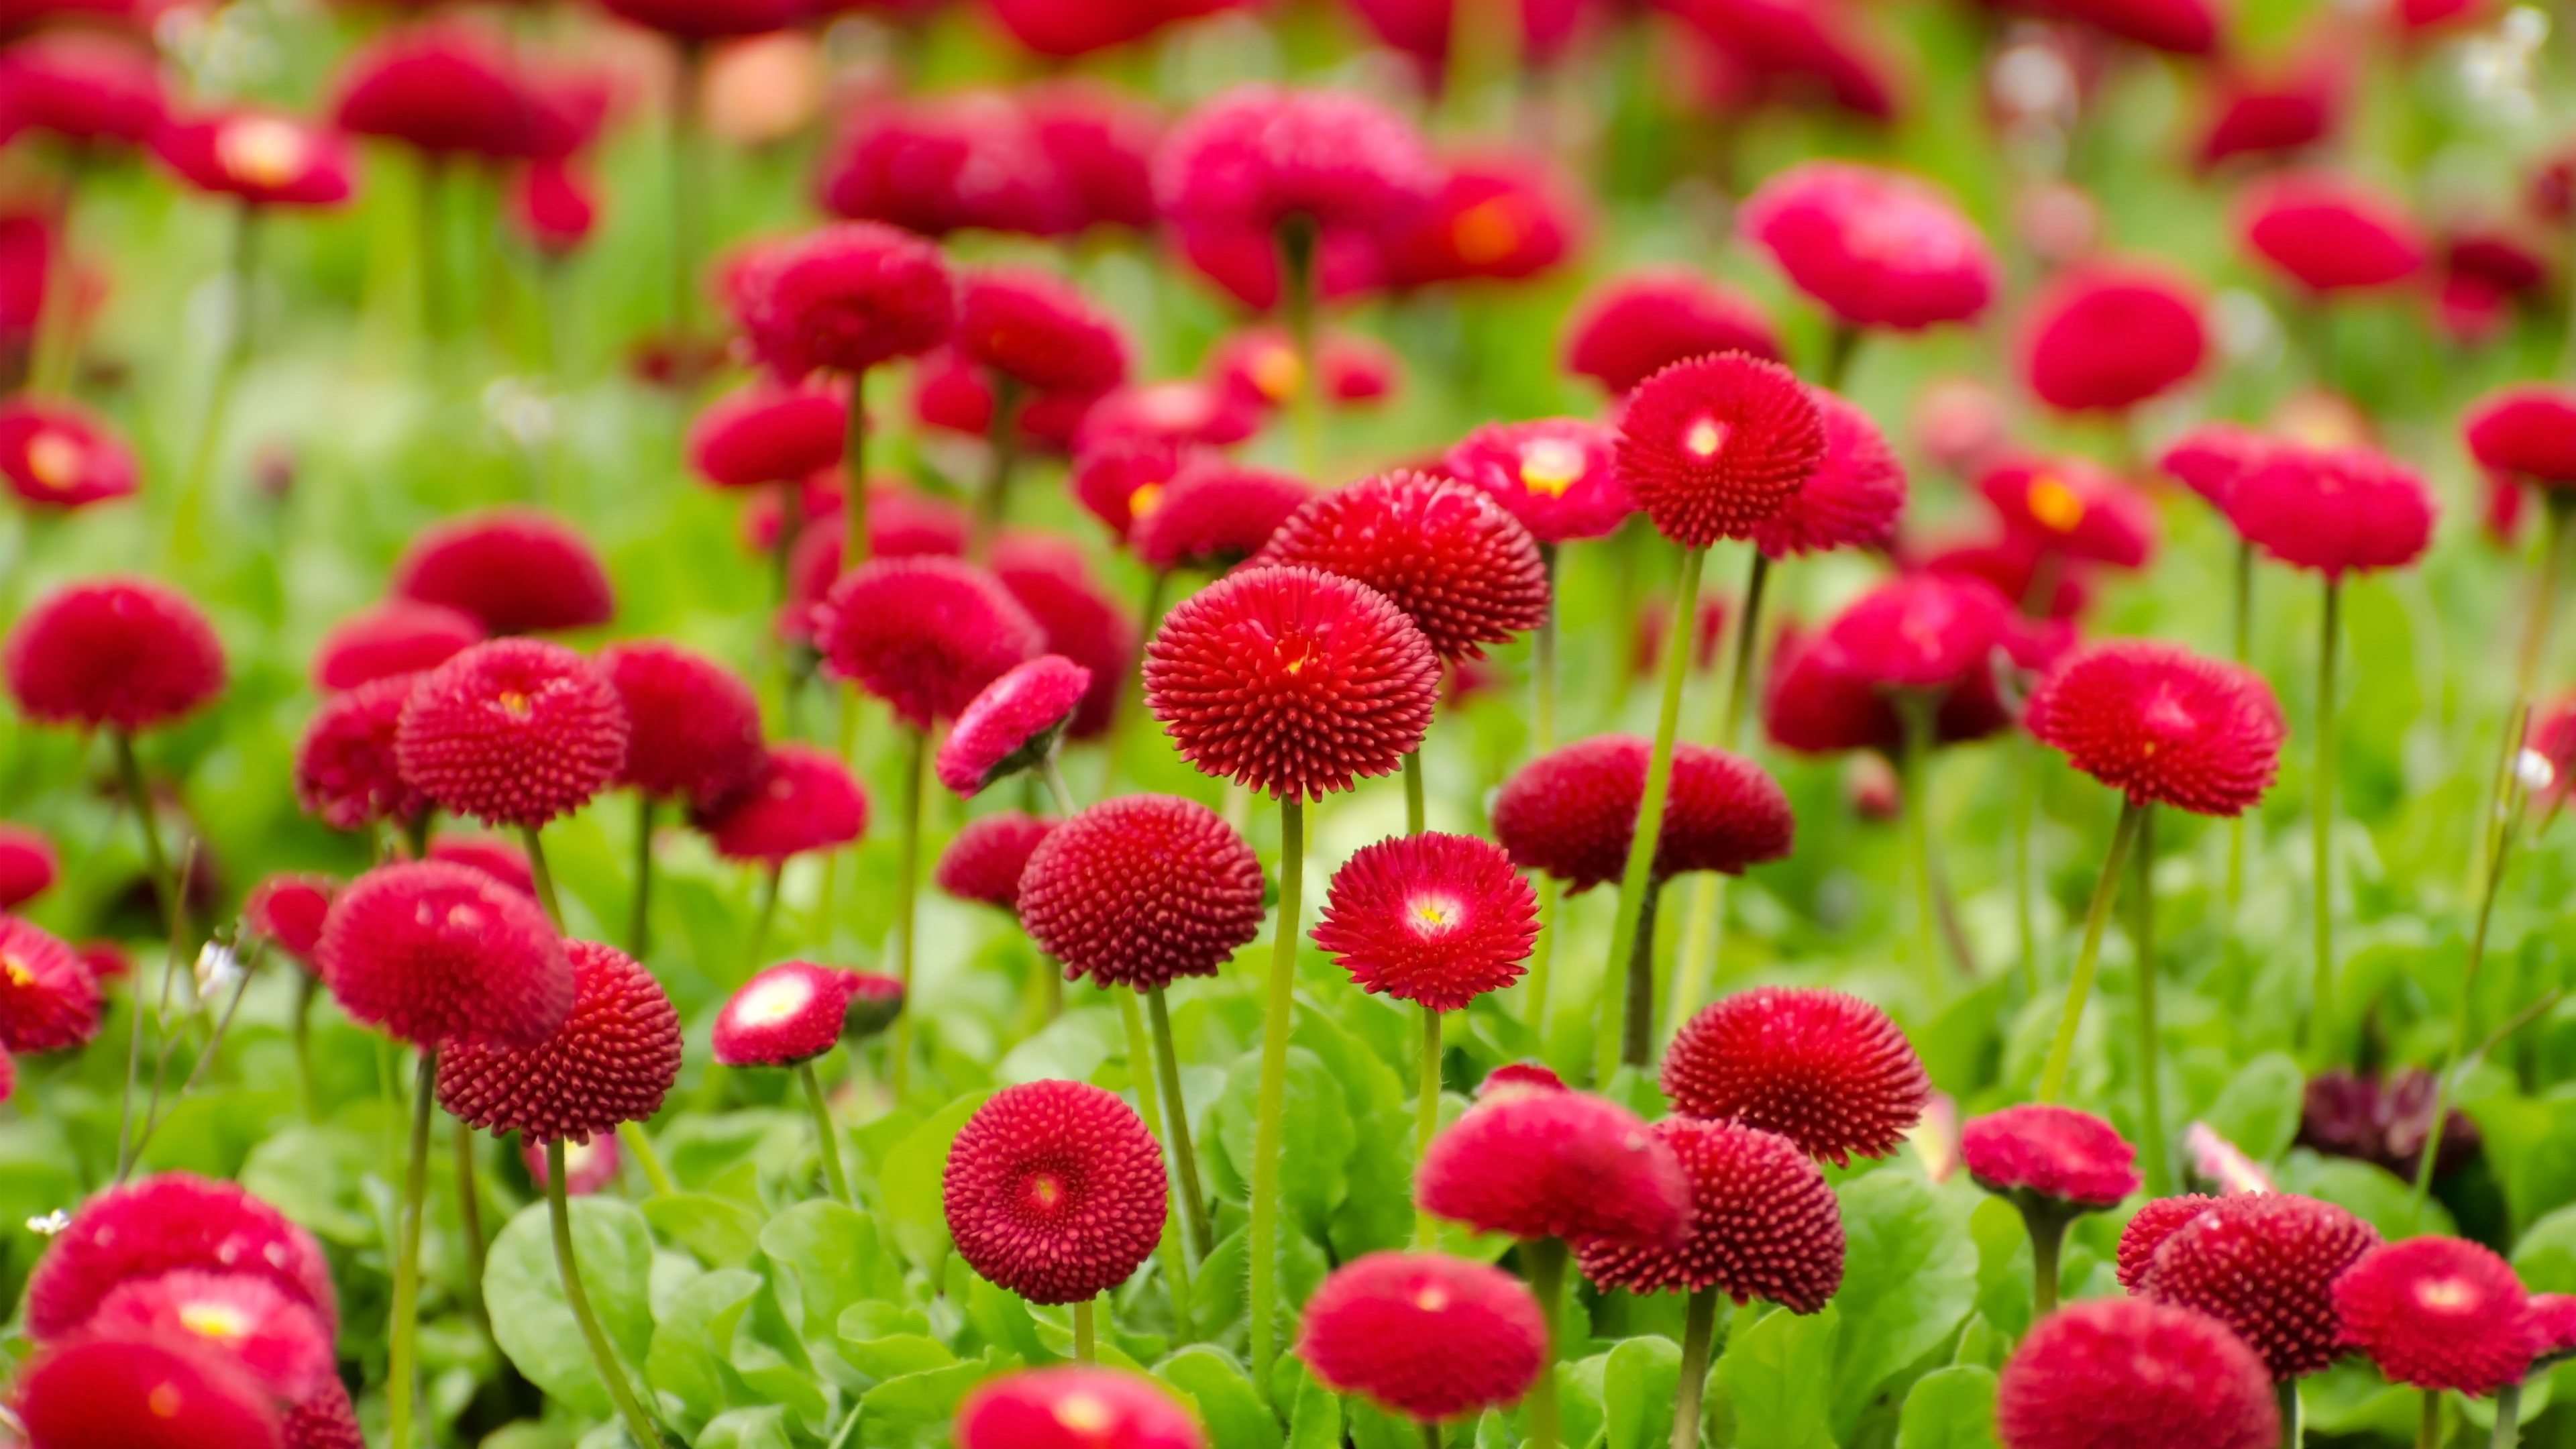 red flowers wallpaper wallpapers for free download about ,, Natural flower